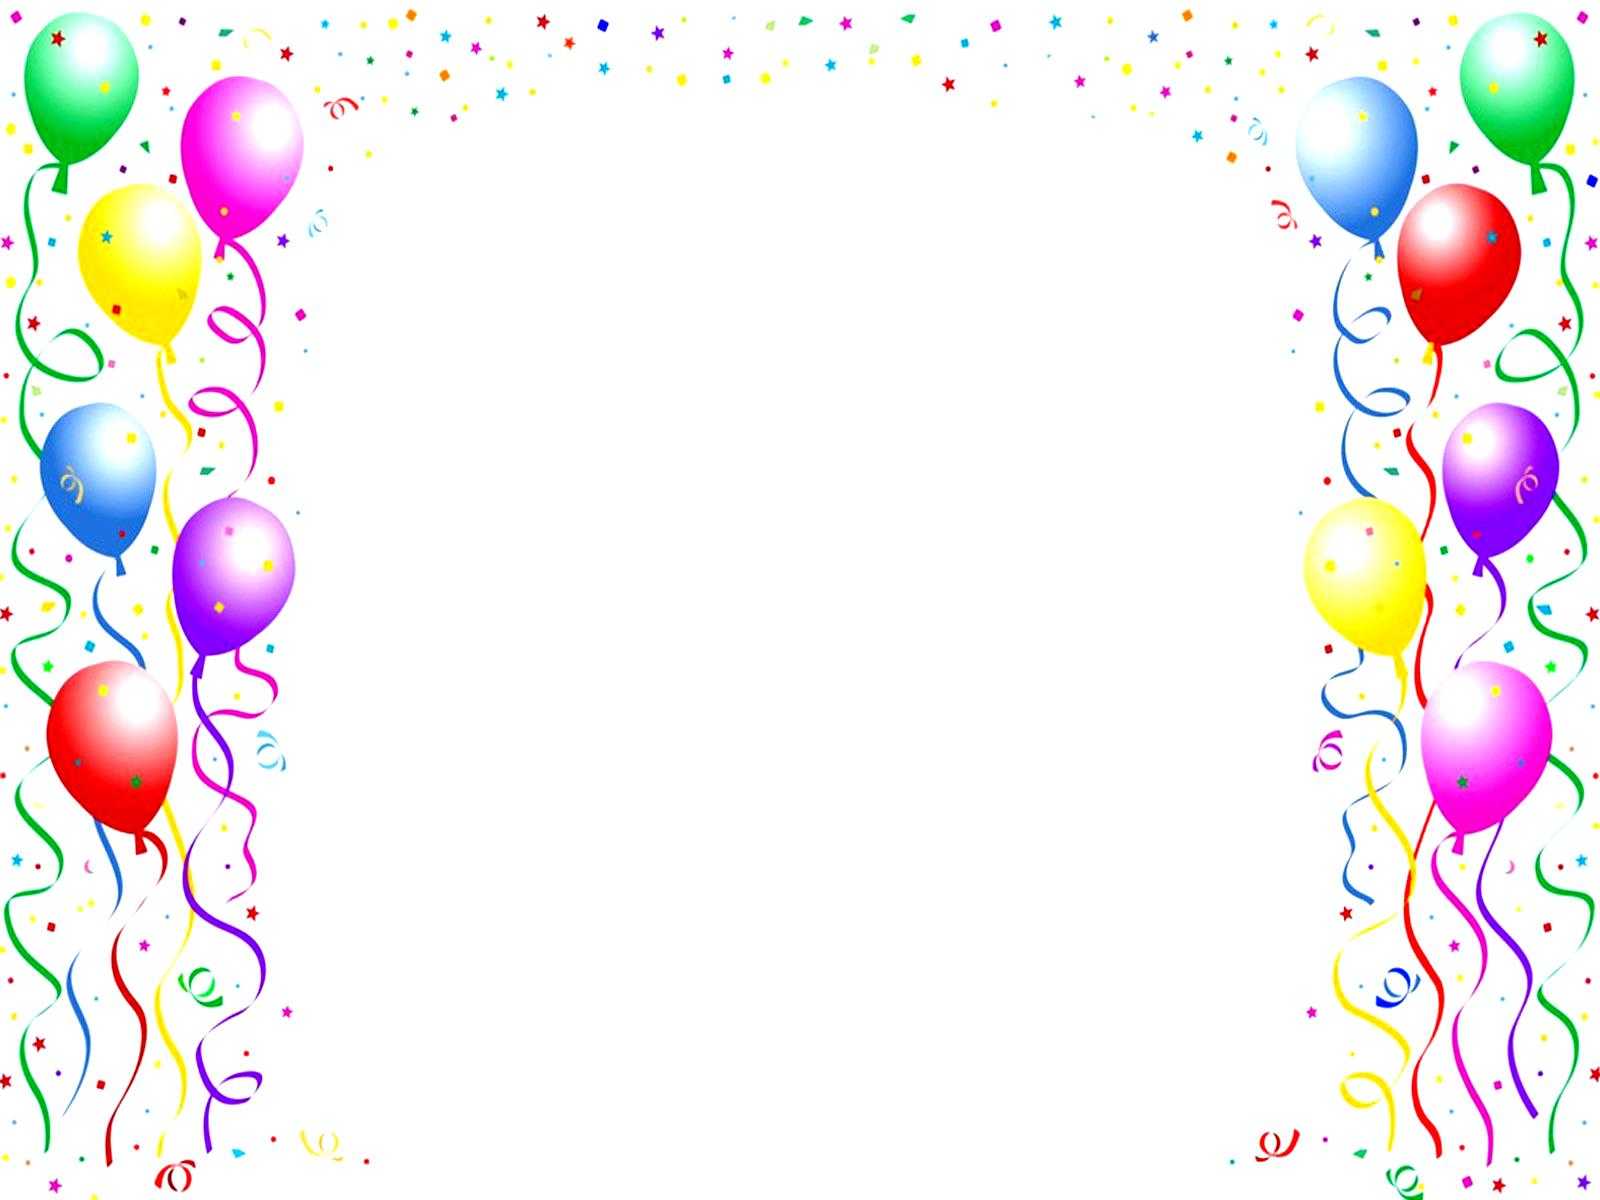 Happy birthday frames and borders clipart royalty free stock Birthday Borders | Free download best Birthday Borders on ClipArtMag.com royalty free stock